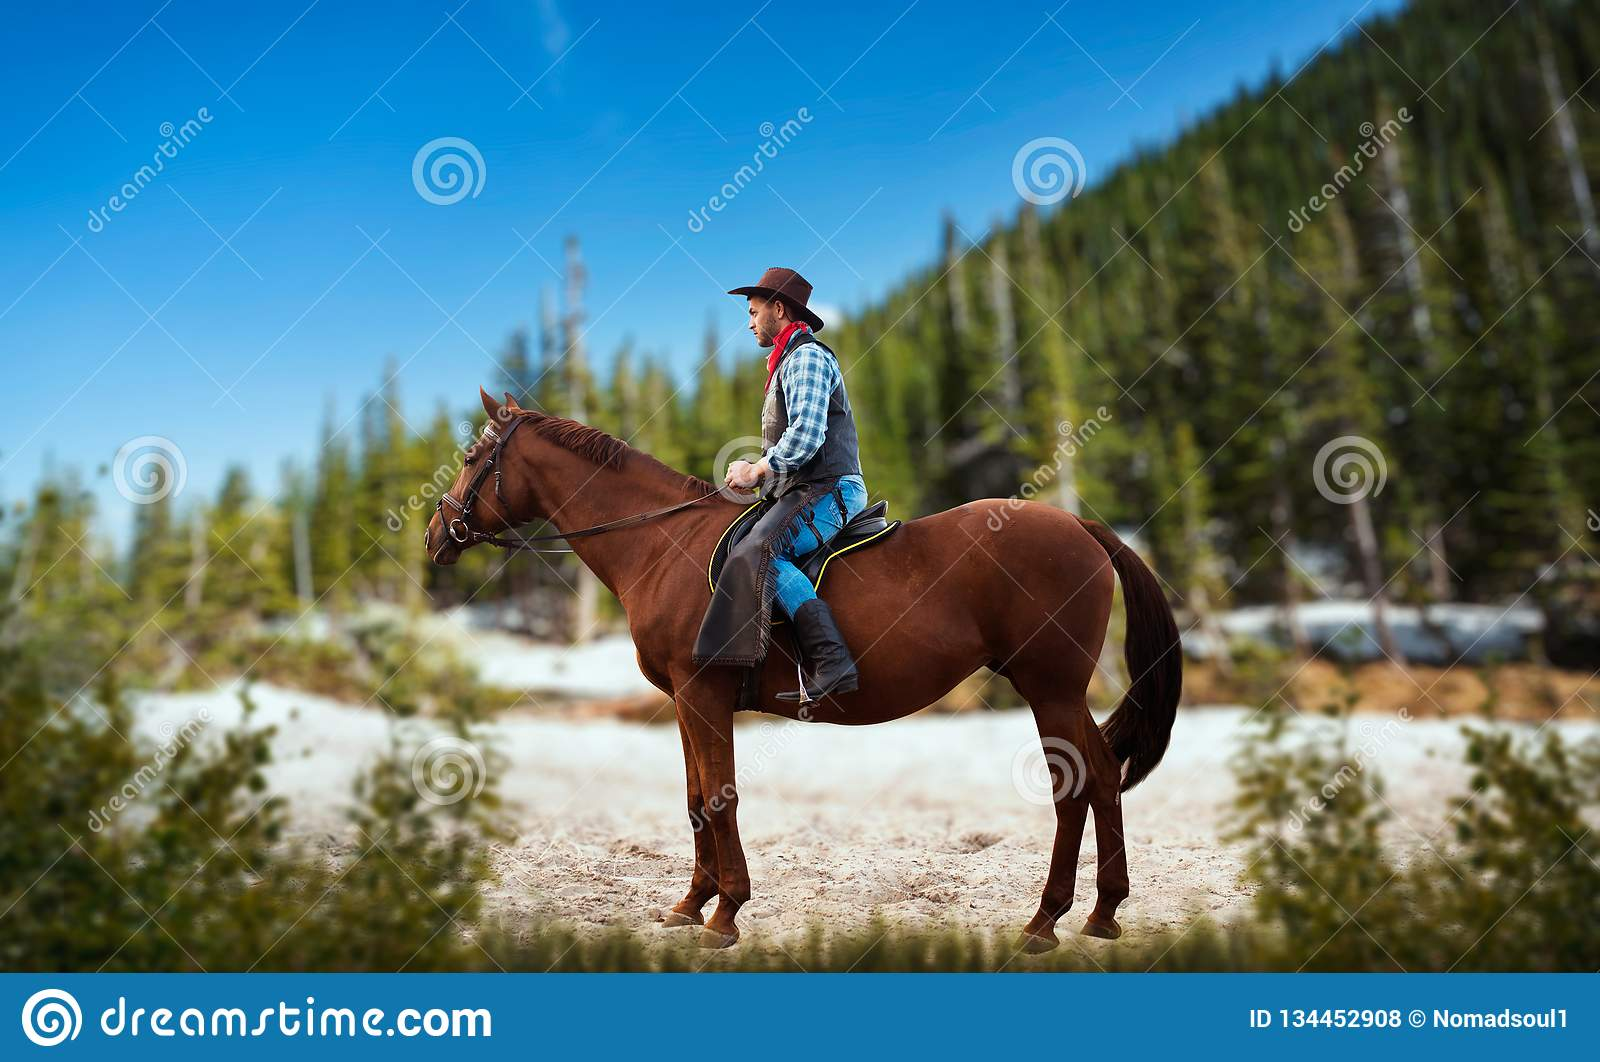 Cowboy In Jeans And Leather Jacket Riding A Horse Stock Photo Image Of Outdoor Person 134452908